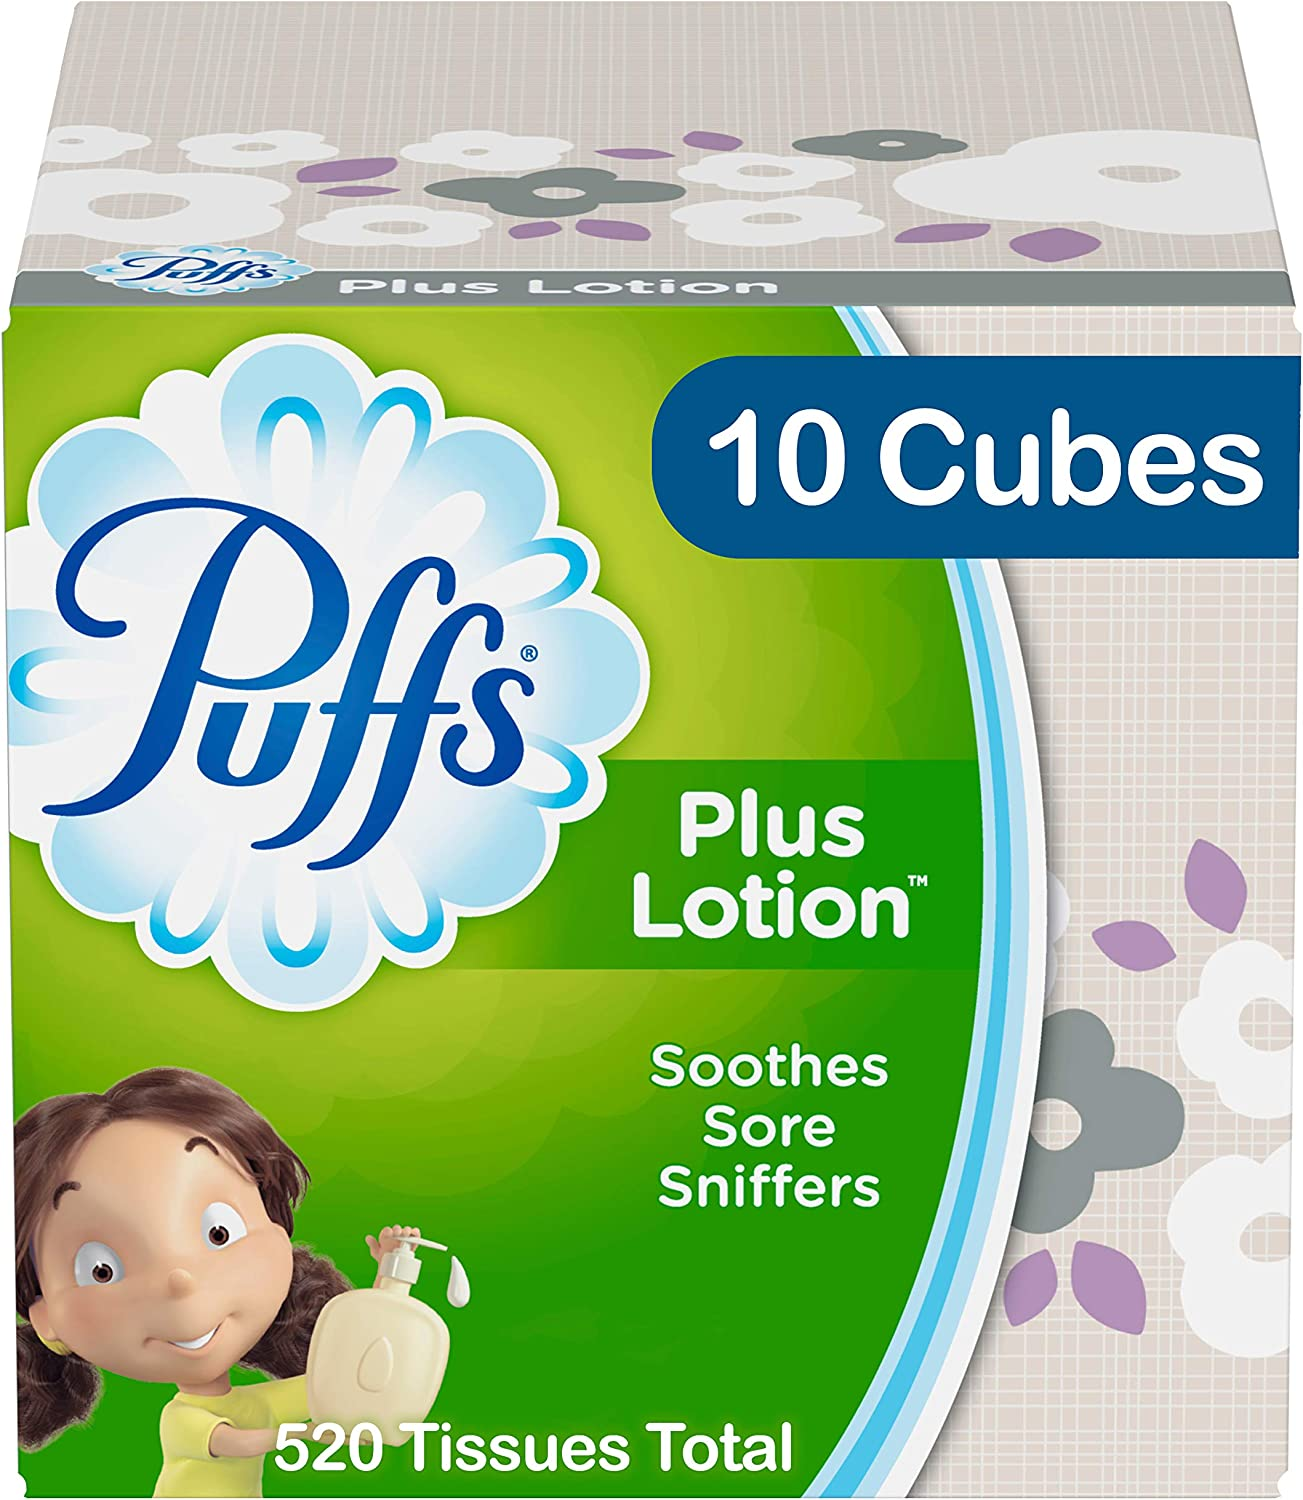 Puffs Plus Lotion Facial Tissues, 10 Cube Boxes, 52 tissues per Cube